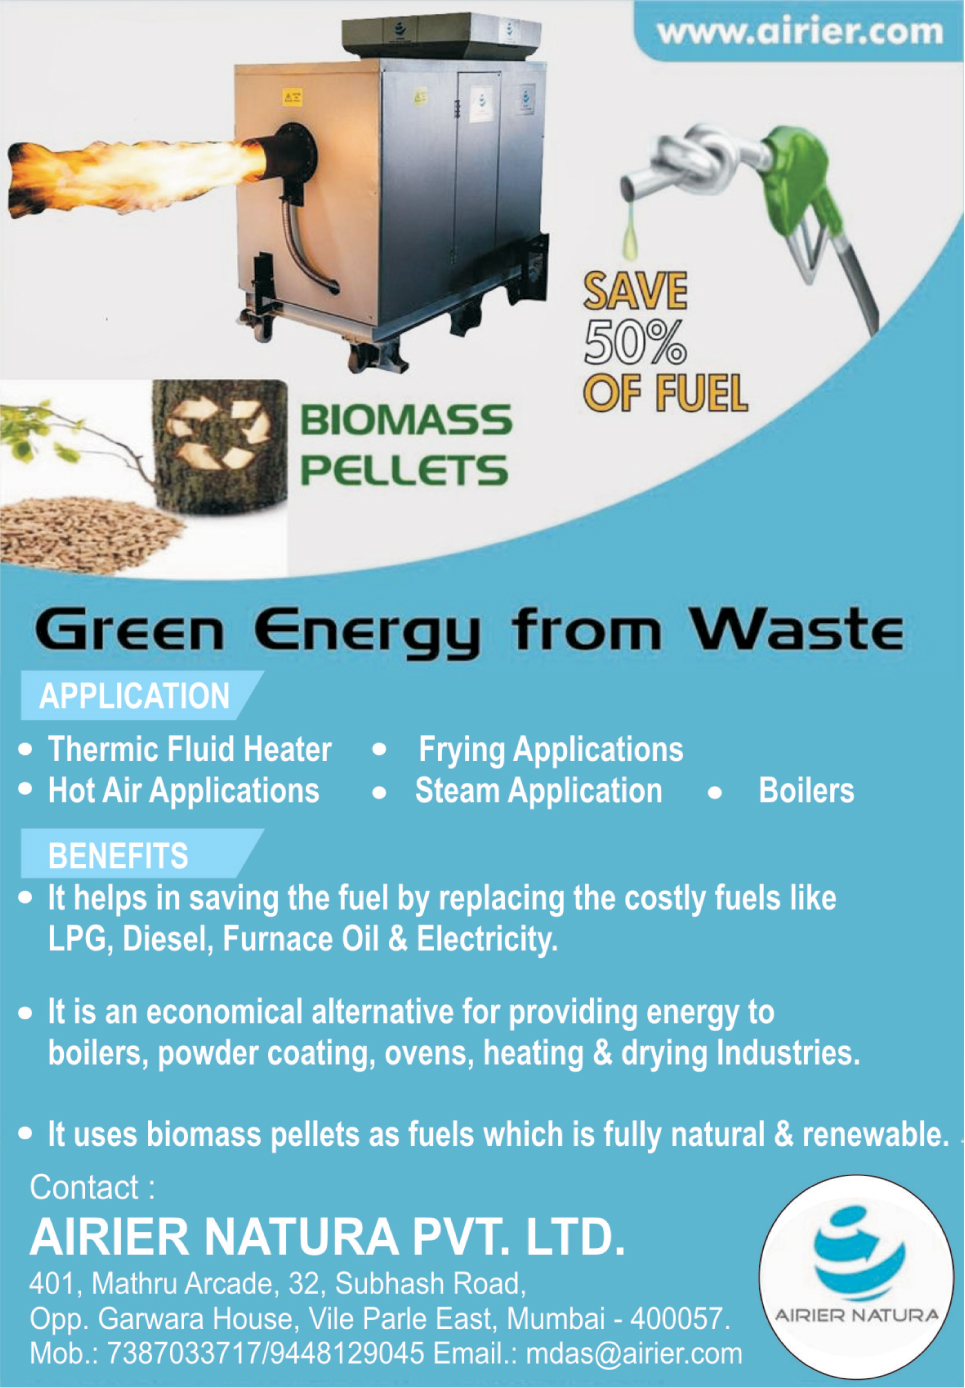 Biomass Burners | Thermic Fluid Heater | Frying Applications ...